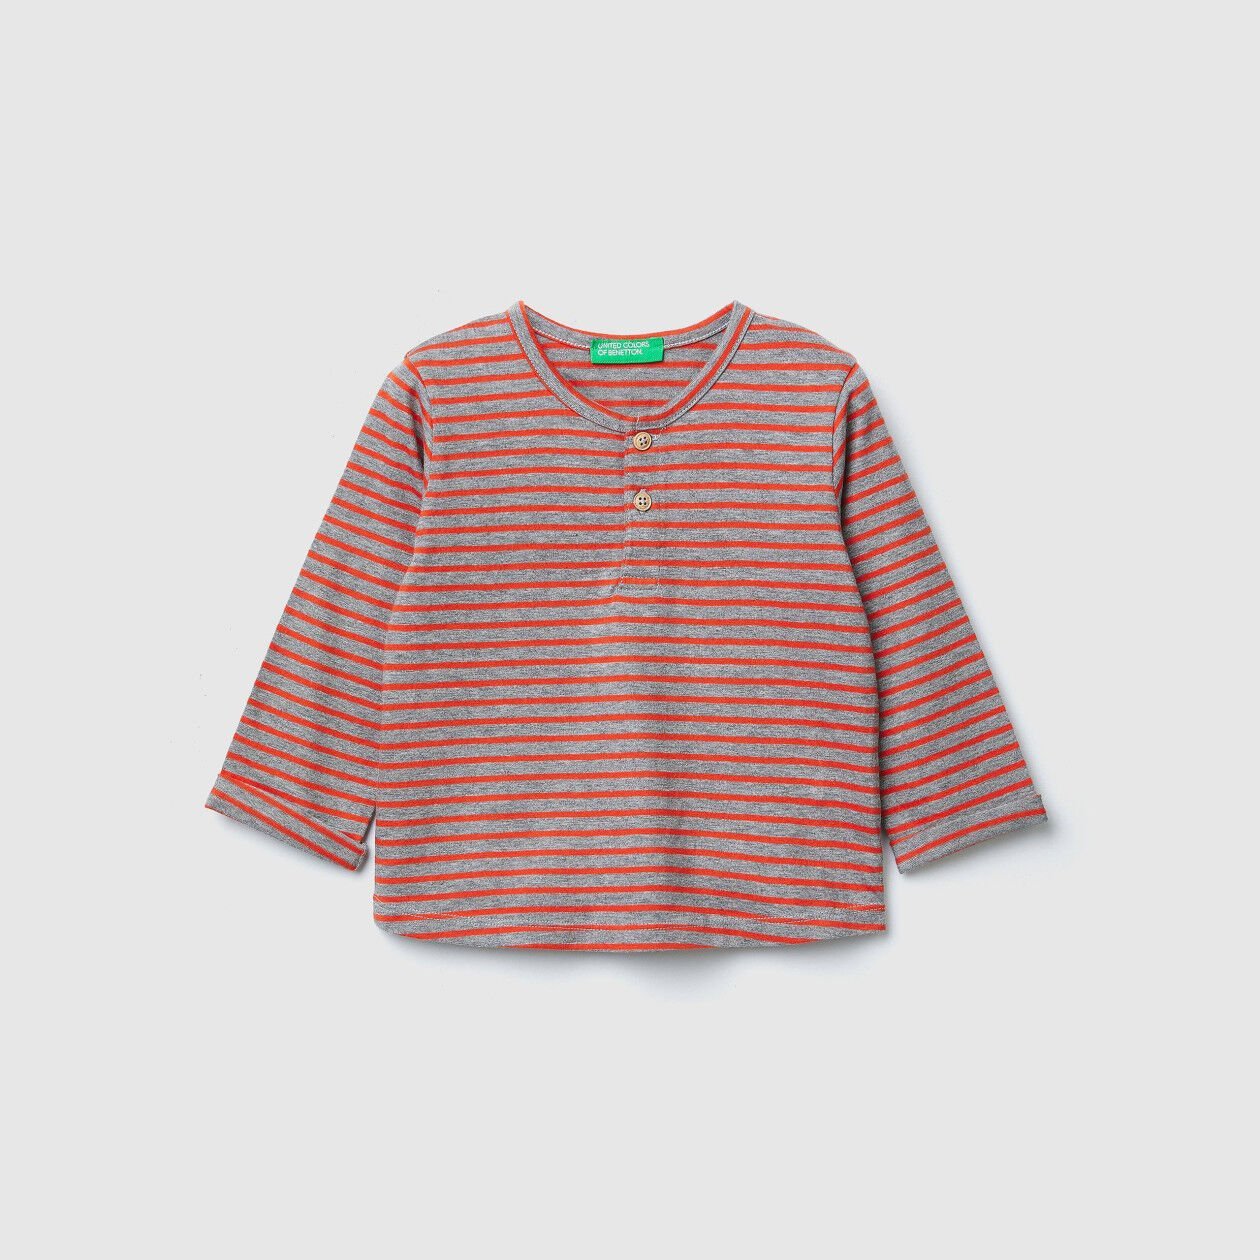 Striped t-shirt with patches